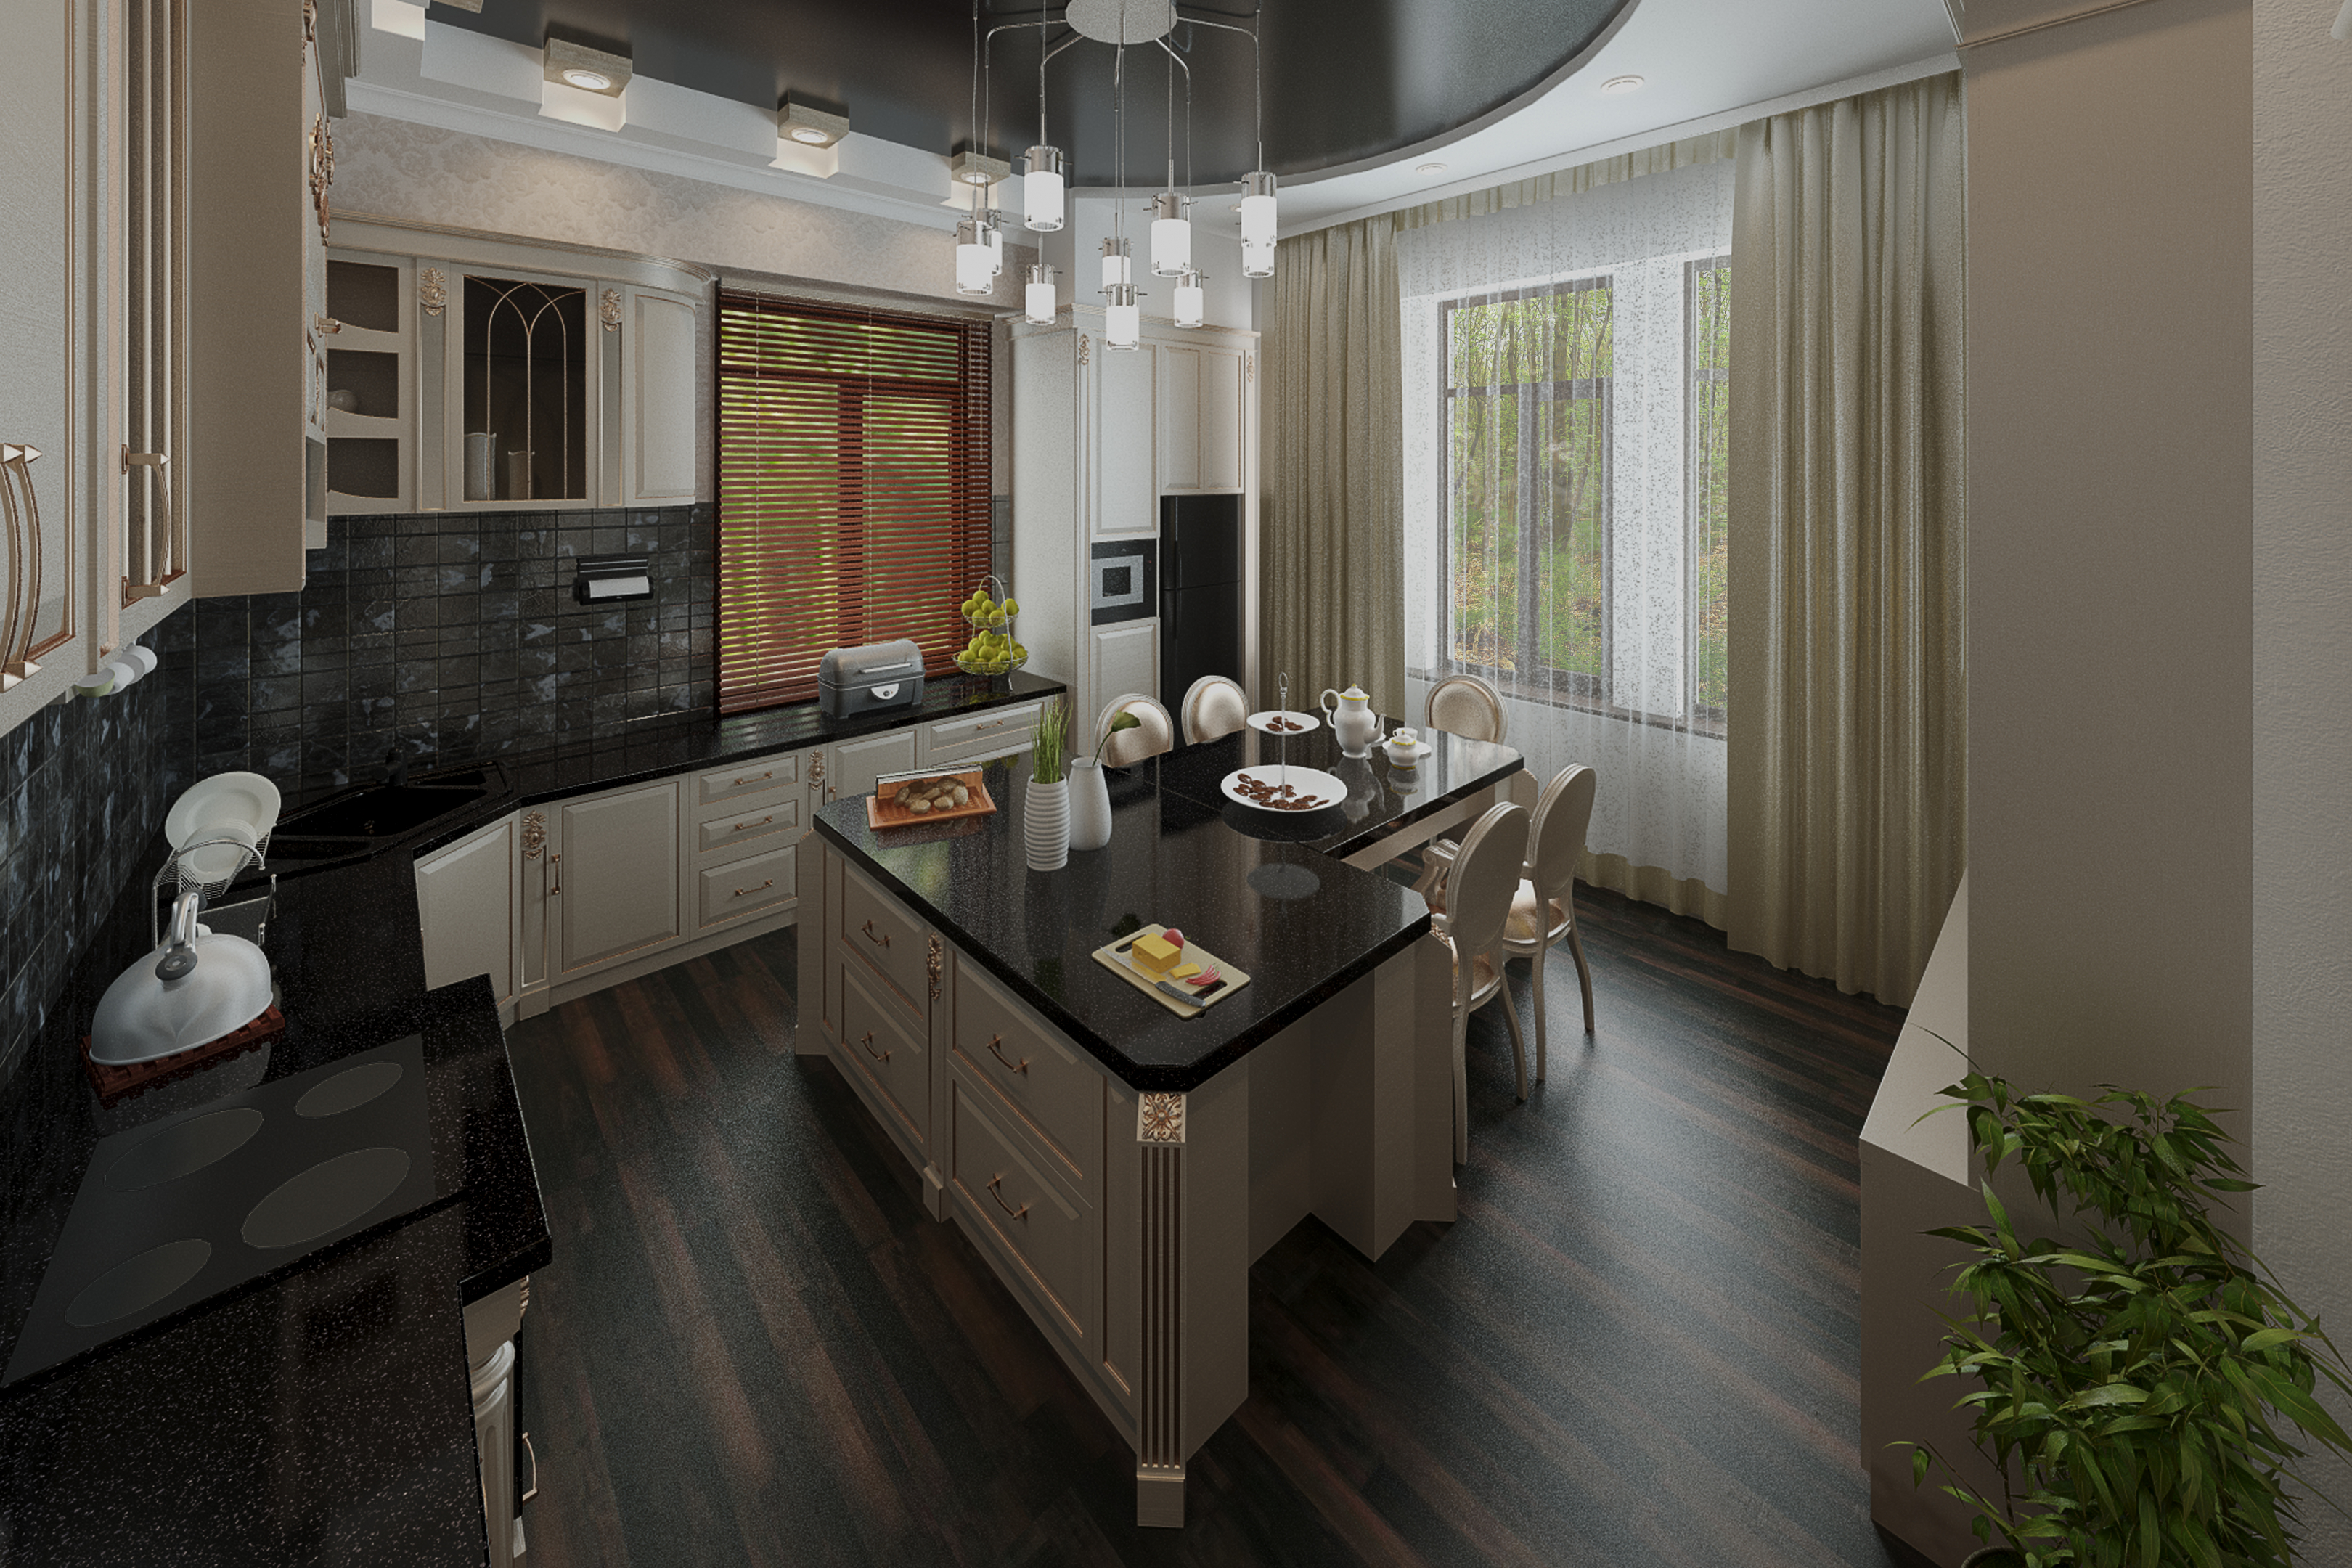 Kitchen-dining room in 3d max vray 3.0 image